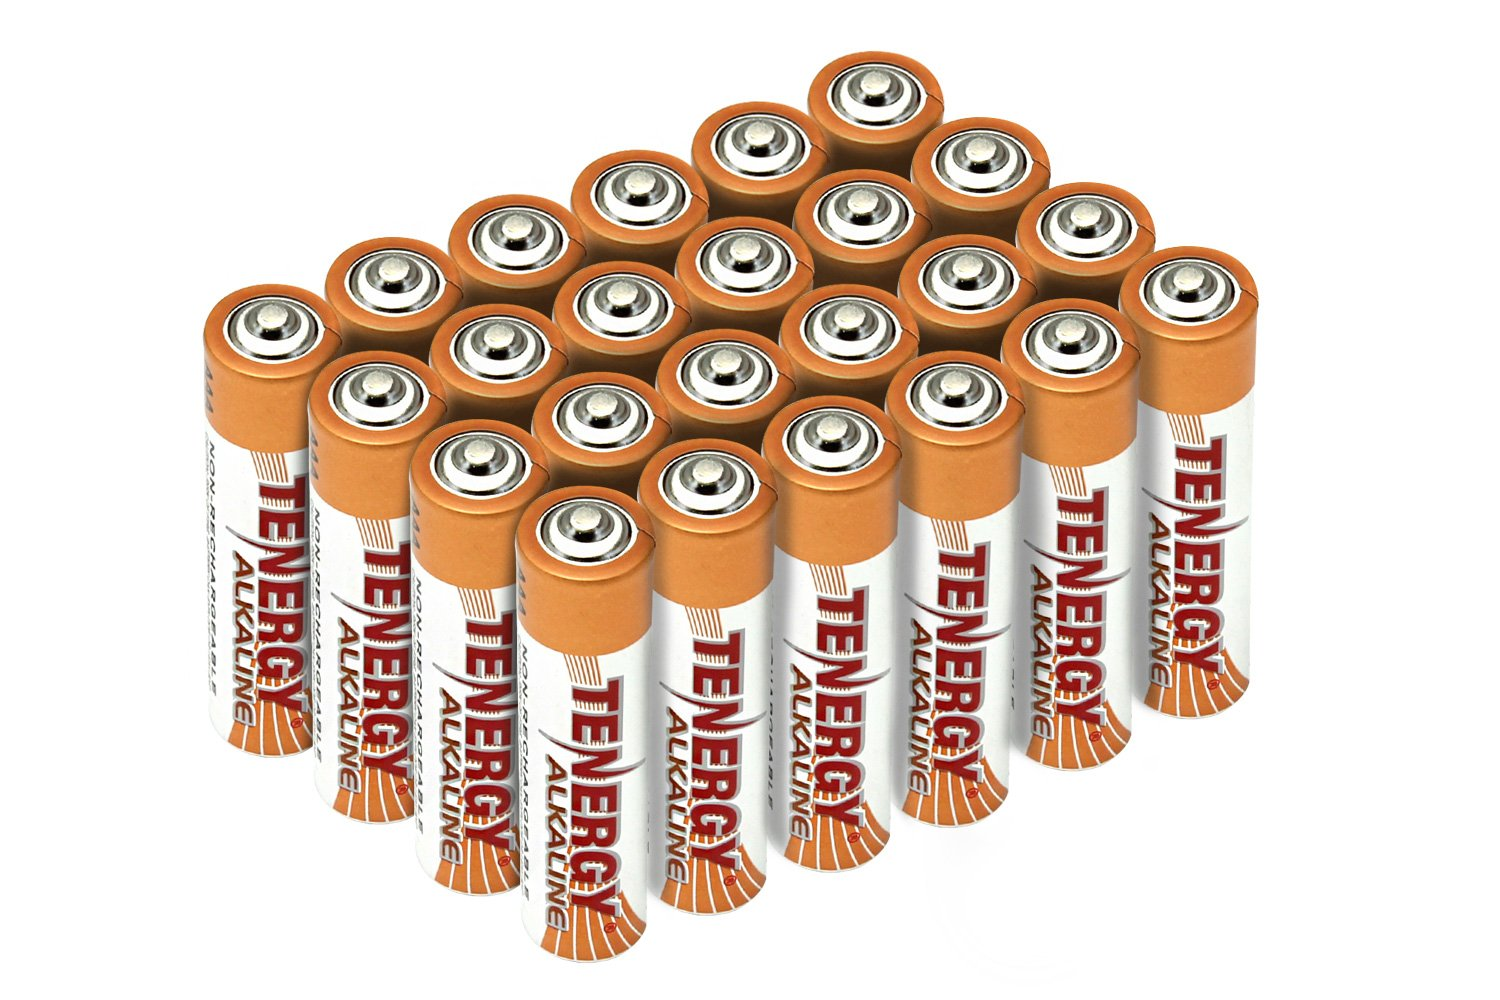 Tenergy 1.5V AAA Alkaline Battery, High Performance AAA Non-Rechargeable Batteries for Clocks, Remotes, Toys & Electronic Devices, AAA Cell Batteries, 24-Pack